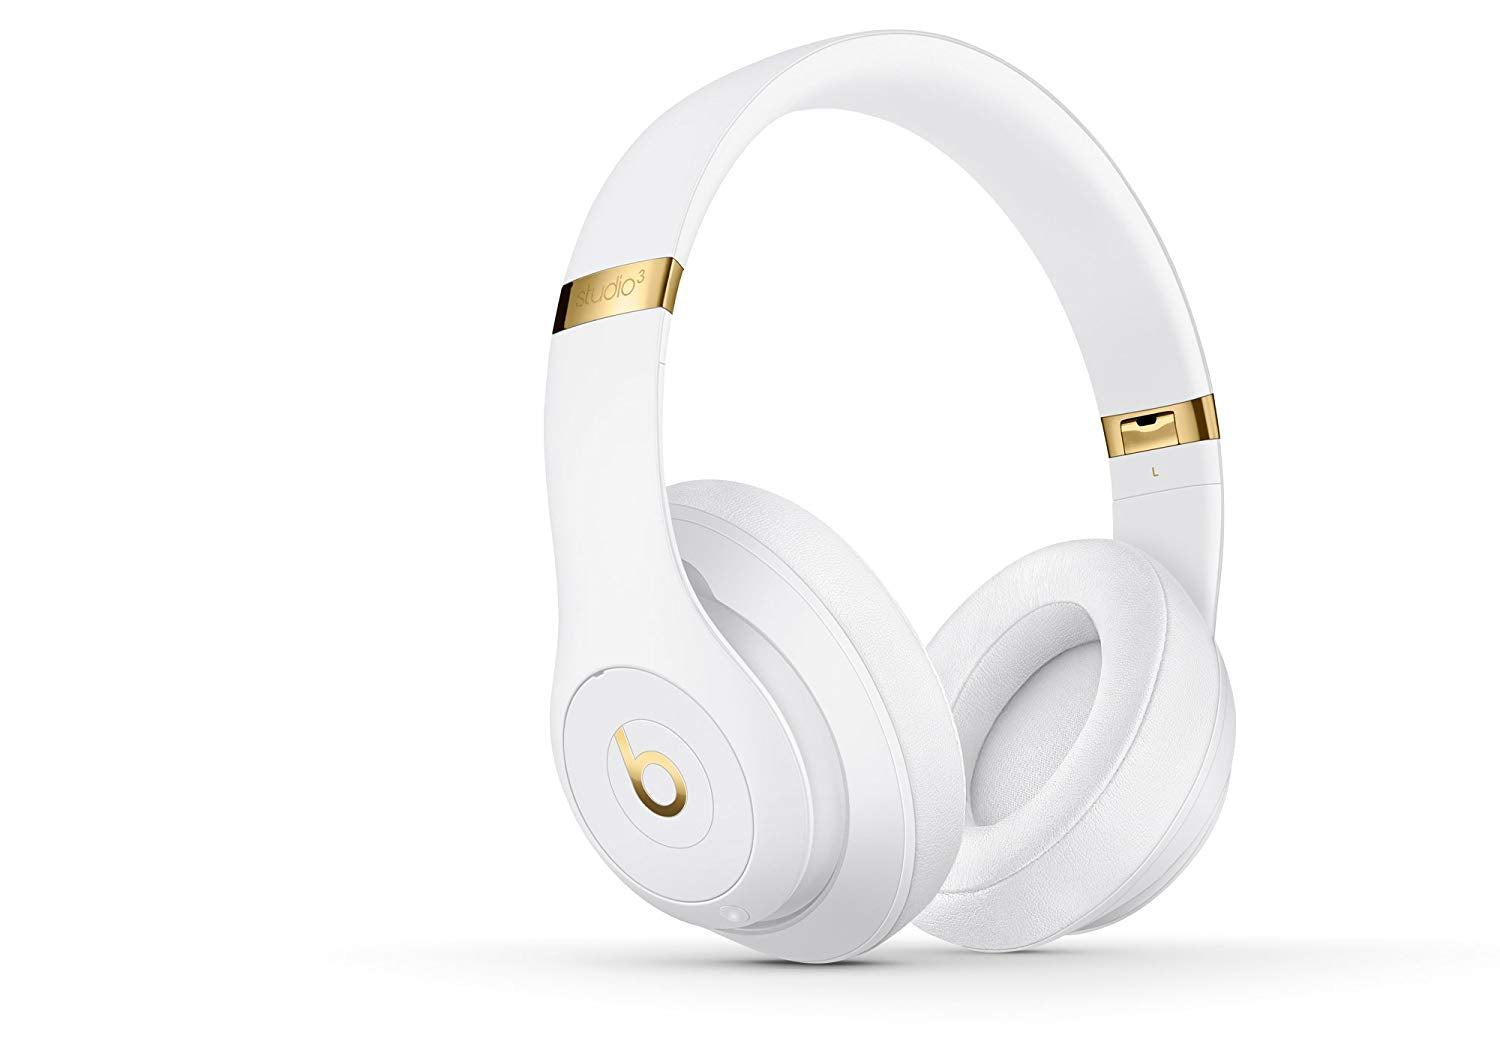 Beats Studio3 Wireless Over-Ear Headphones - White